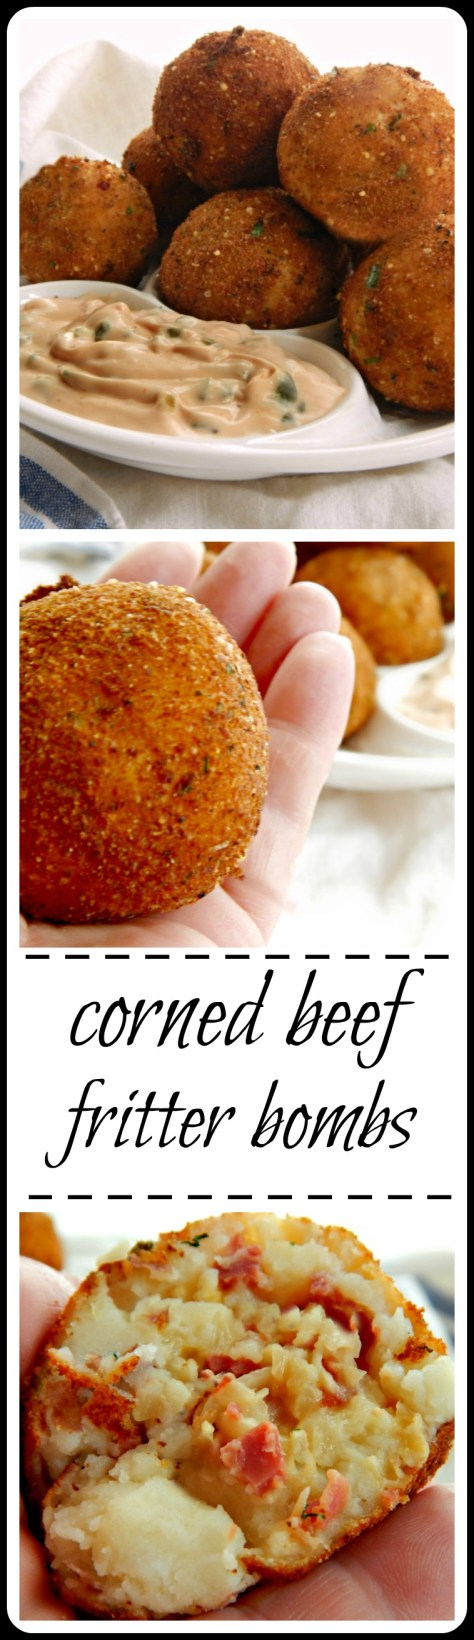 Cheese & Leftover Corned Beef stuffed into a mashed potato ball, breaded and fried! Dip it in 1000 Island for a full on Reuben experience.